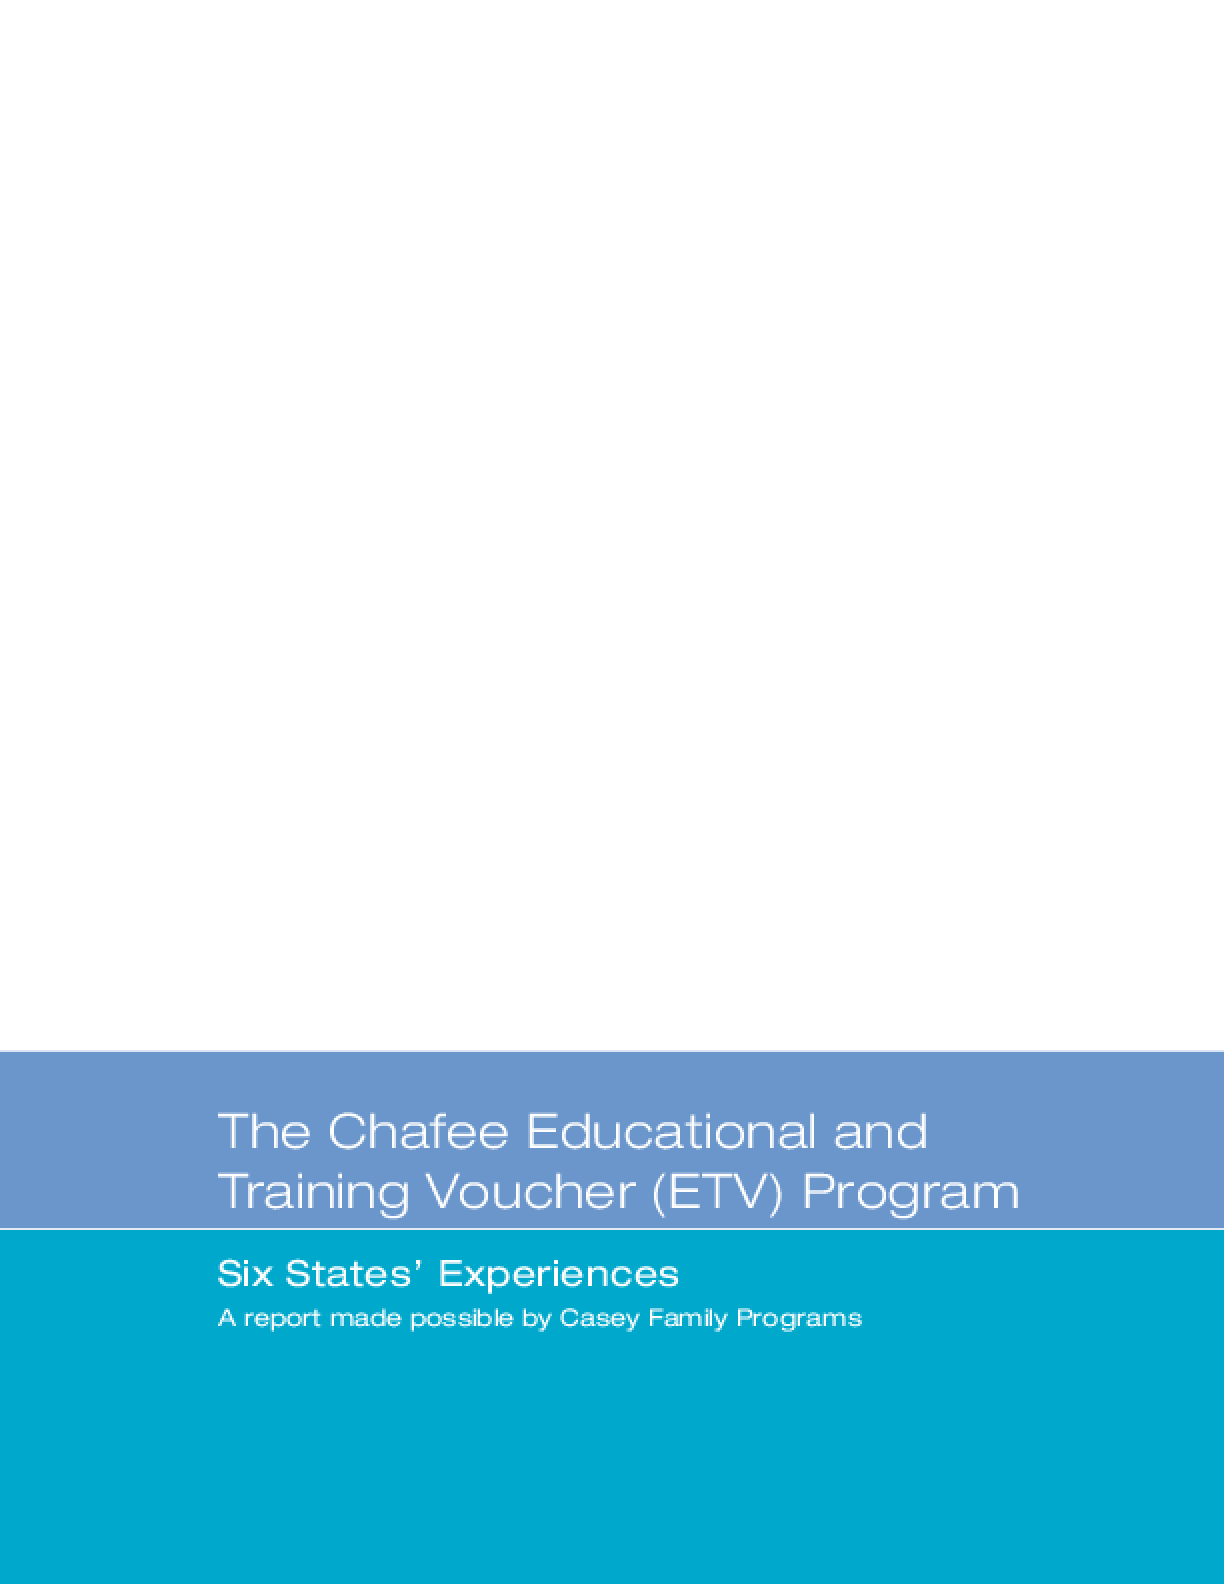 The Chafee Educational and Training Voucher Program: Six States' Experiences